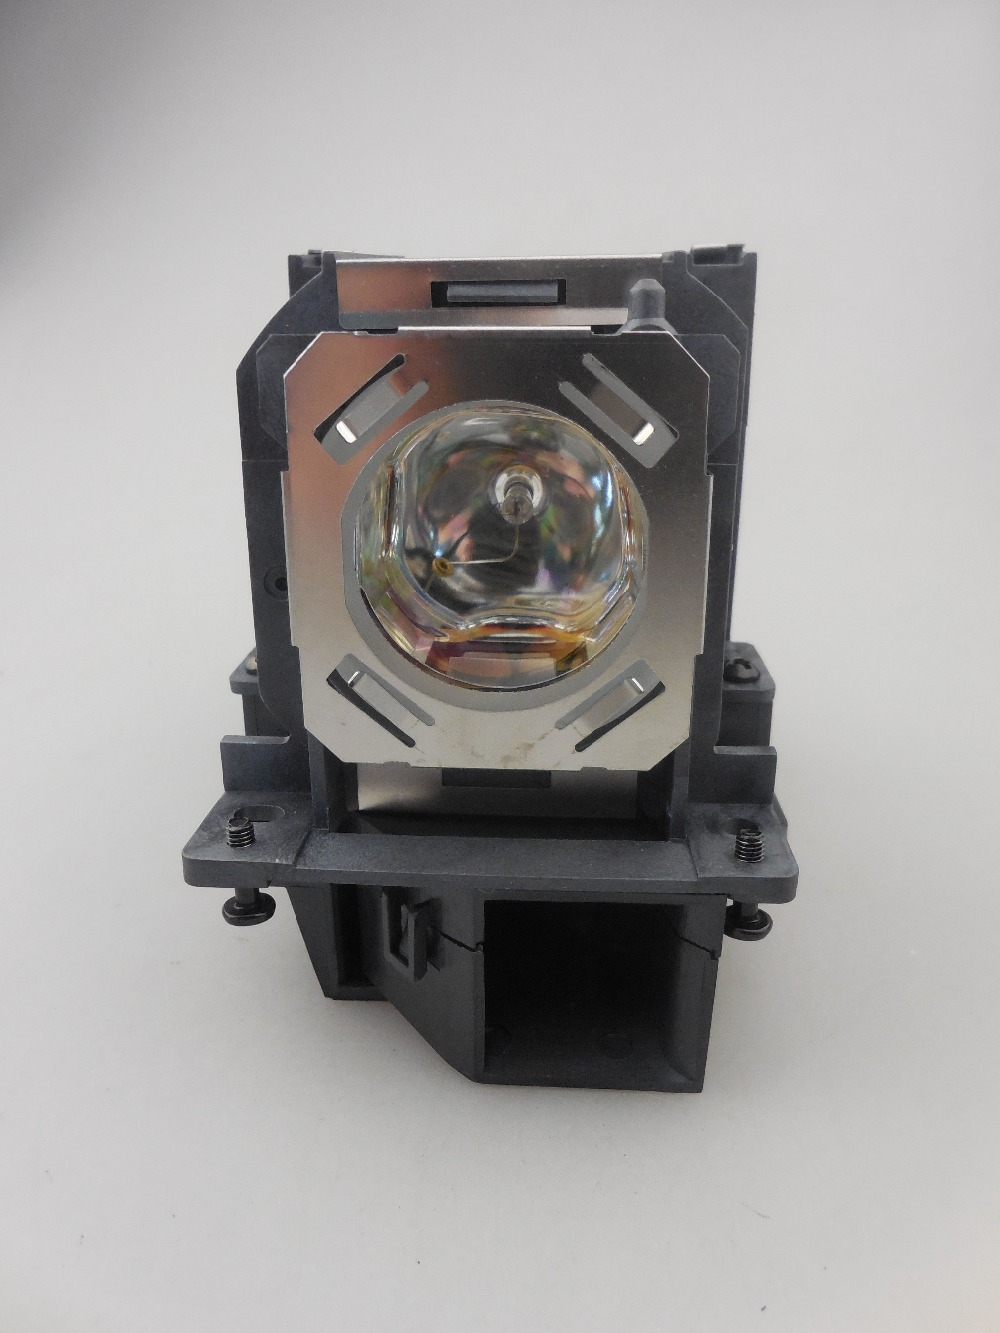 Replacement Projector Lamp LMP C281 for SONY VPL CH370 and VPL CH375